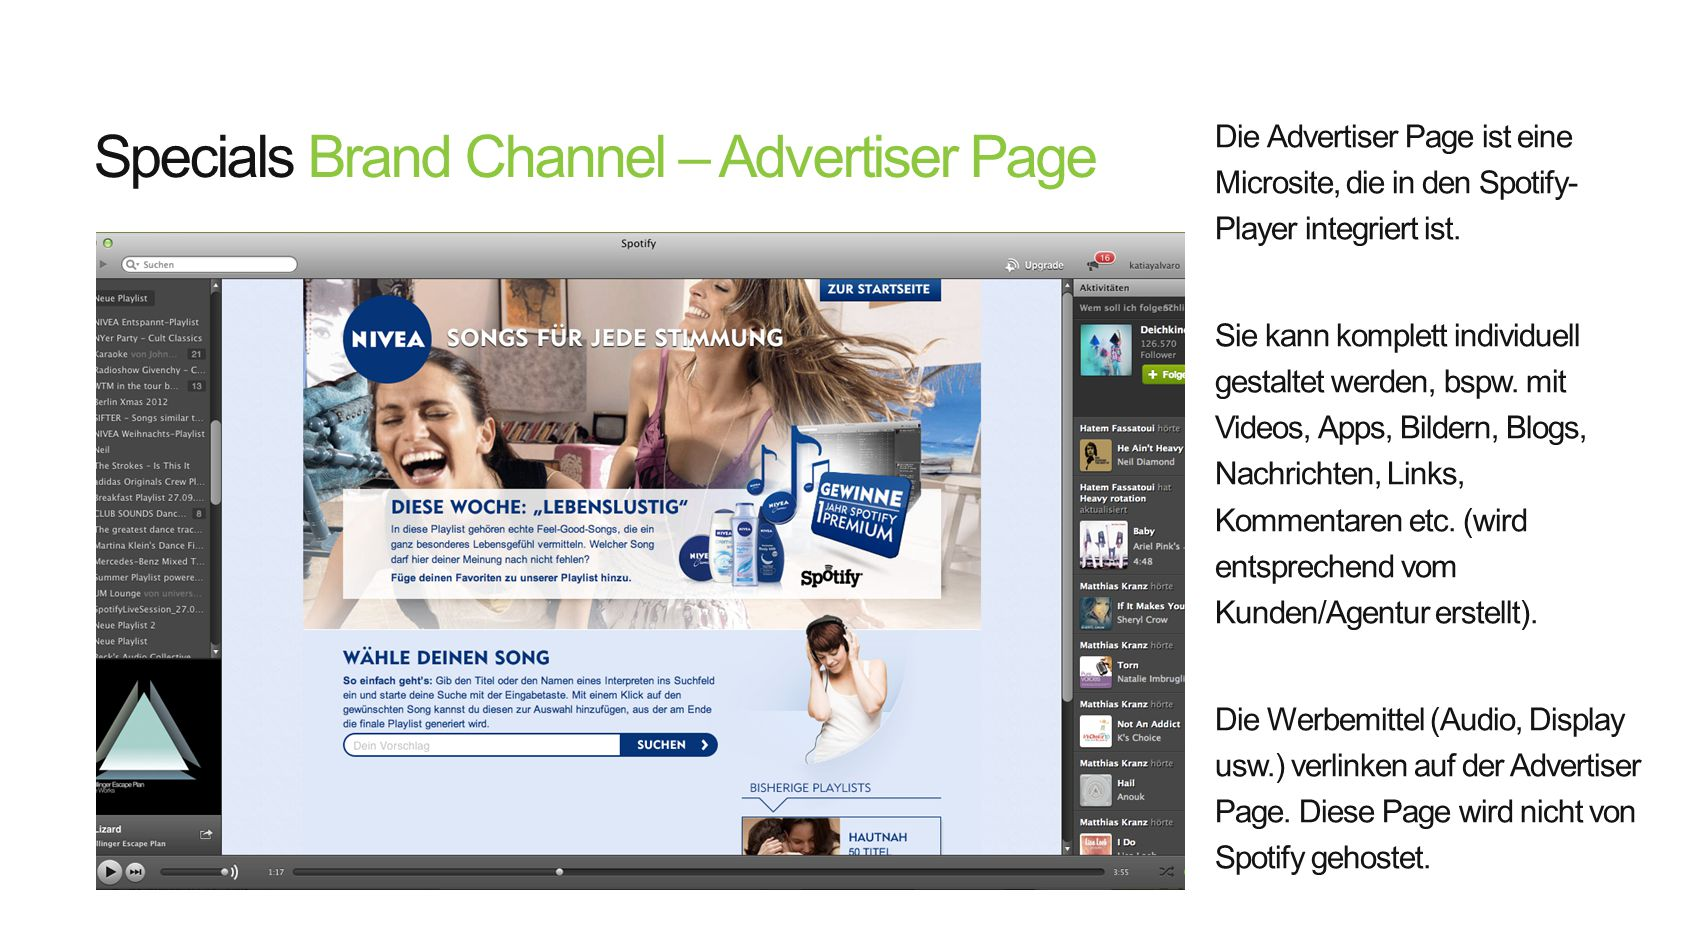 Specials Brand Channel – Advertiser Page